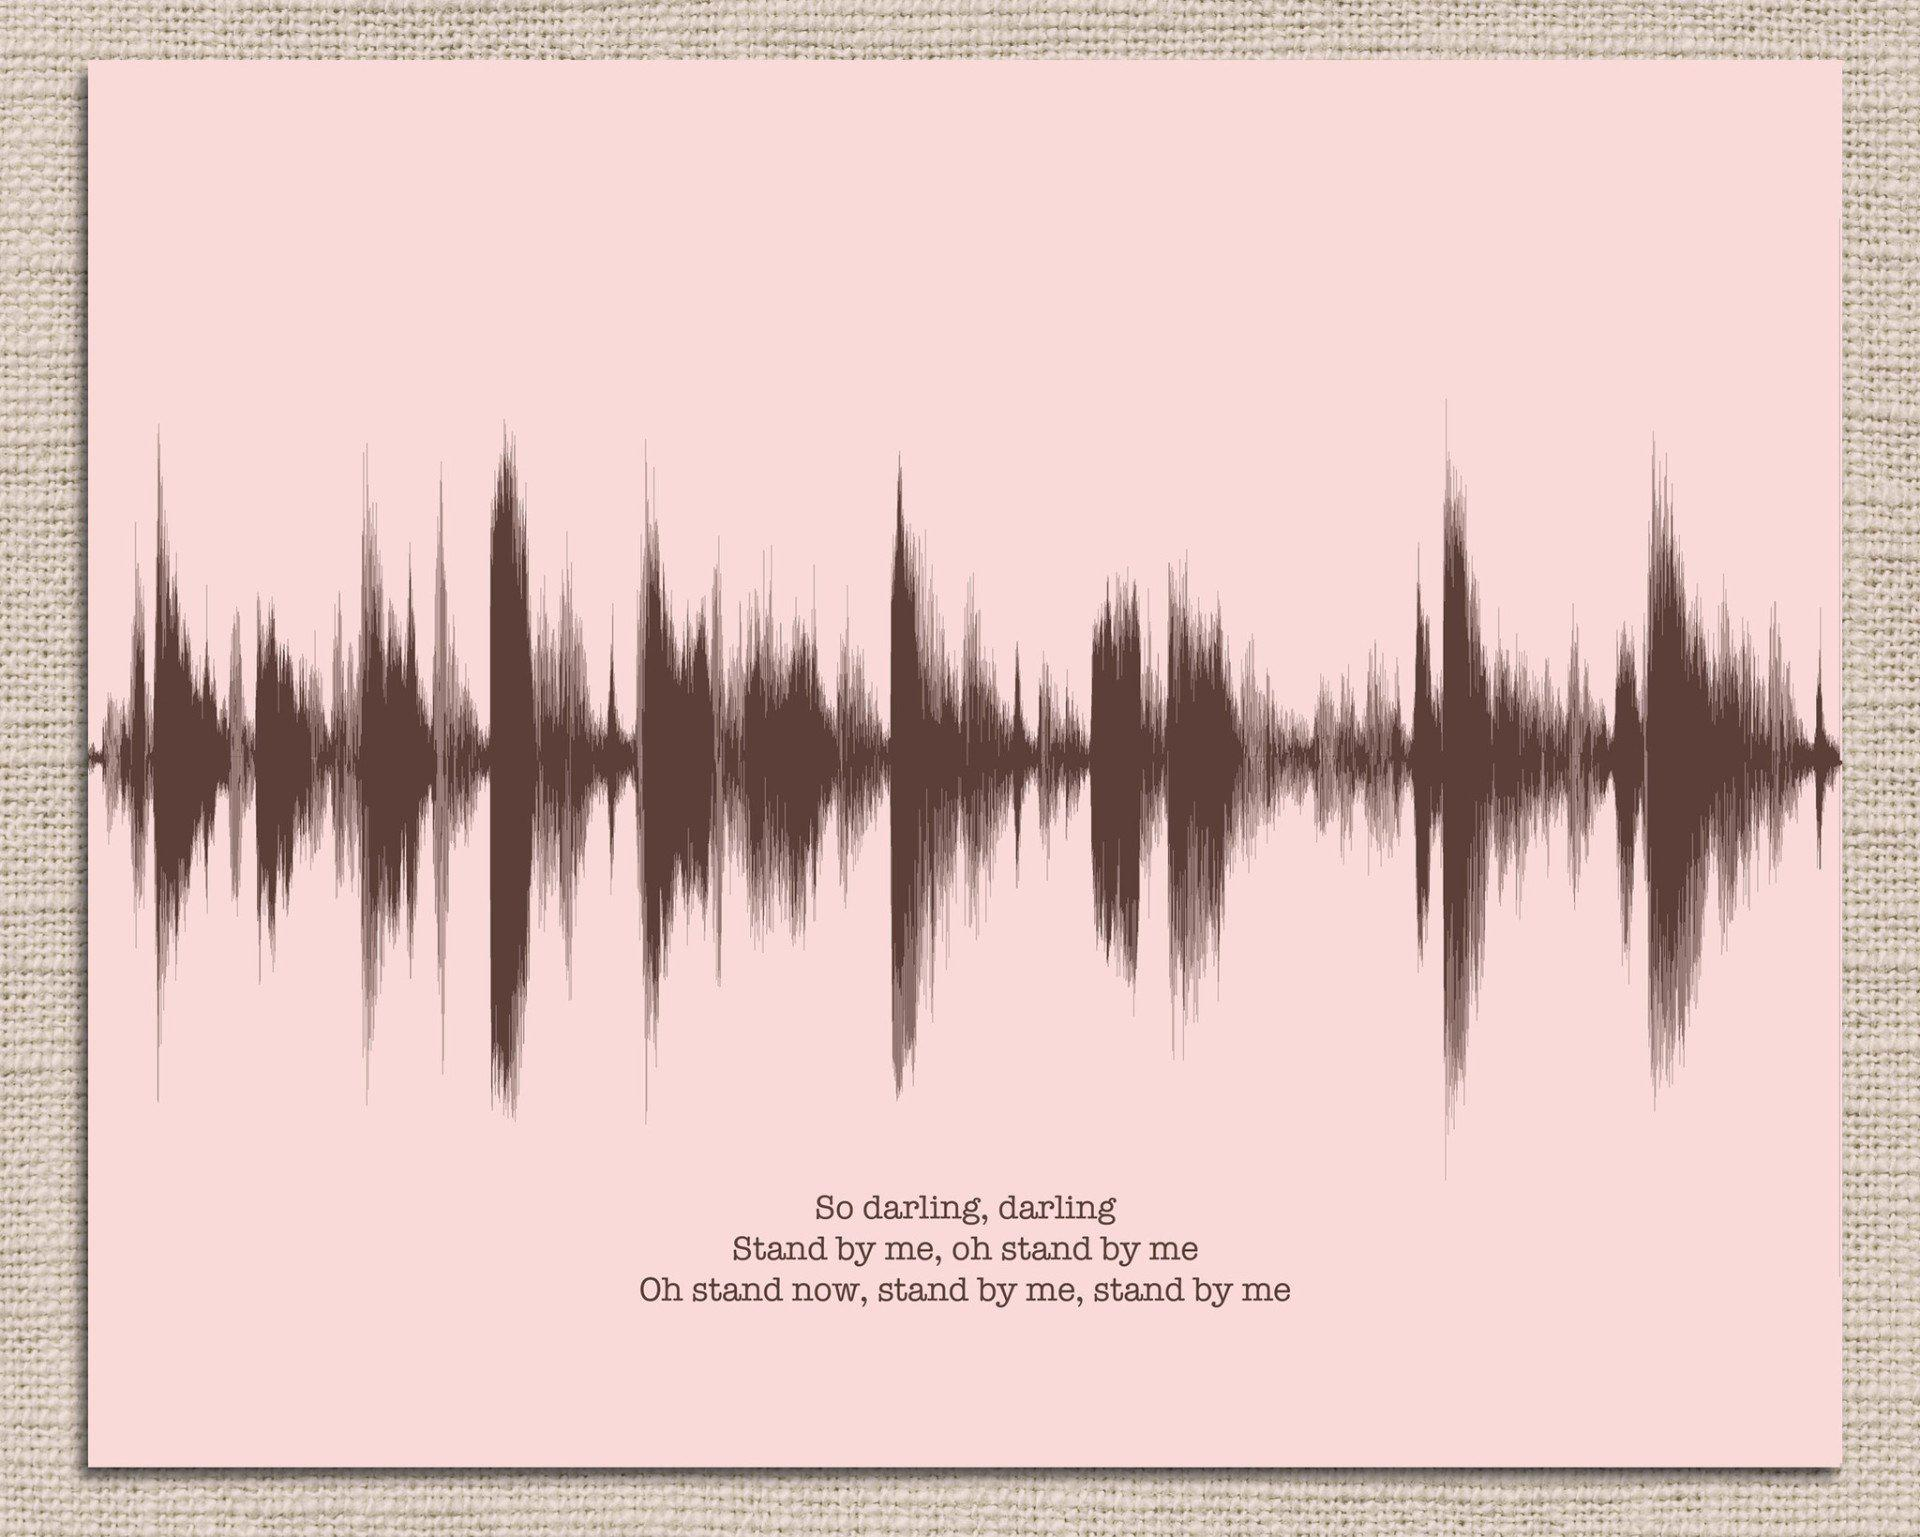 Custom Sound Wave Song Lyric Art - Favorite Song, Lyrics, Music, Ex. Stand By Me - Artsy Voiceprint